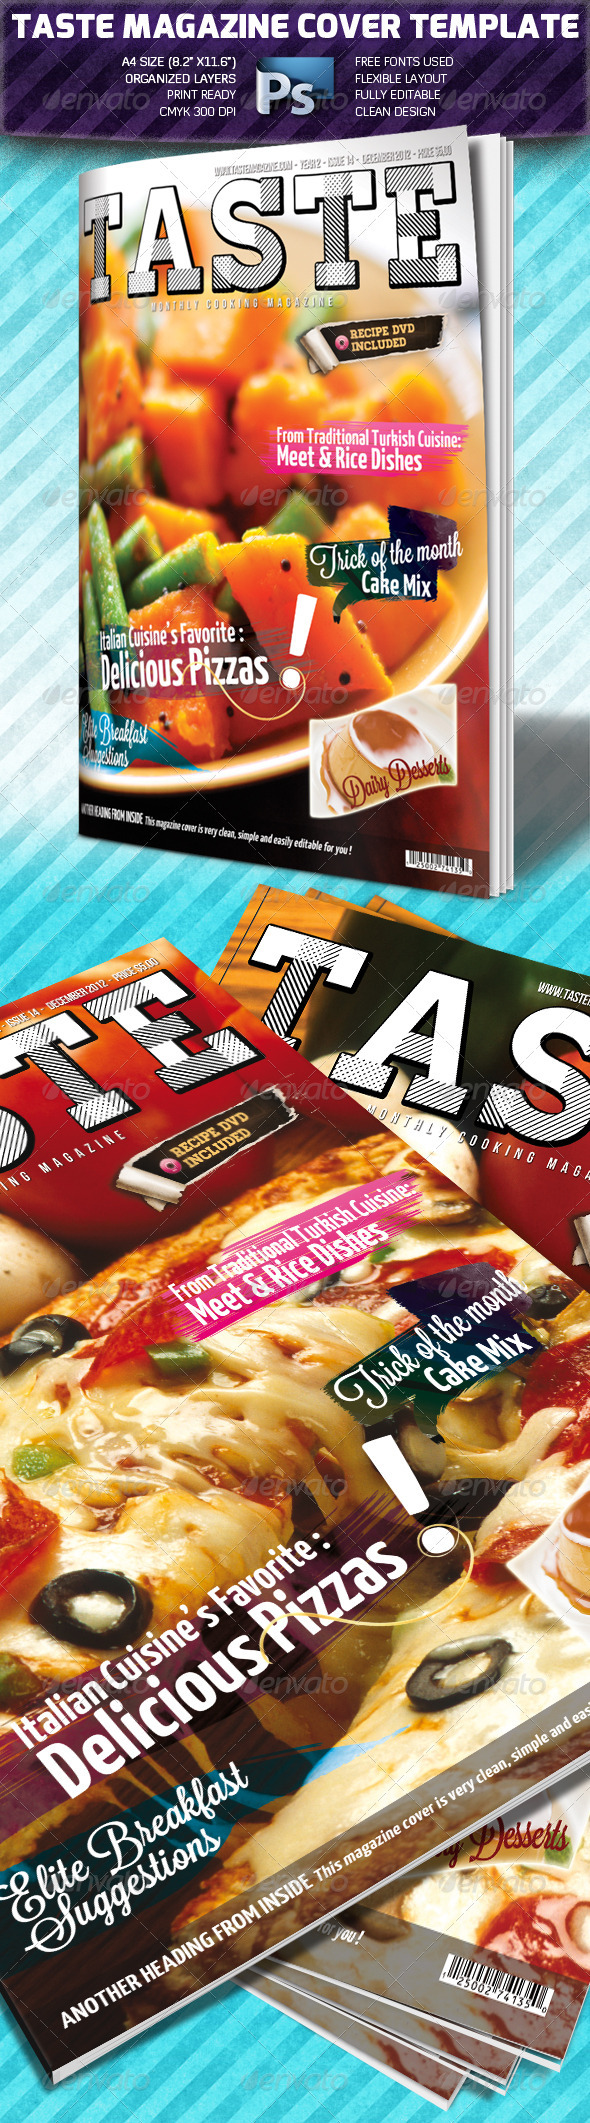 Taste A4 Magazine Cover Template - Magazines Print Templates